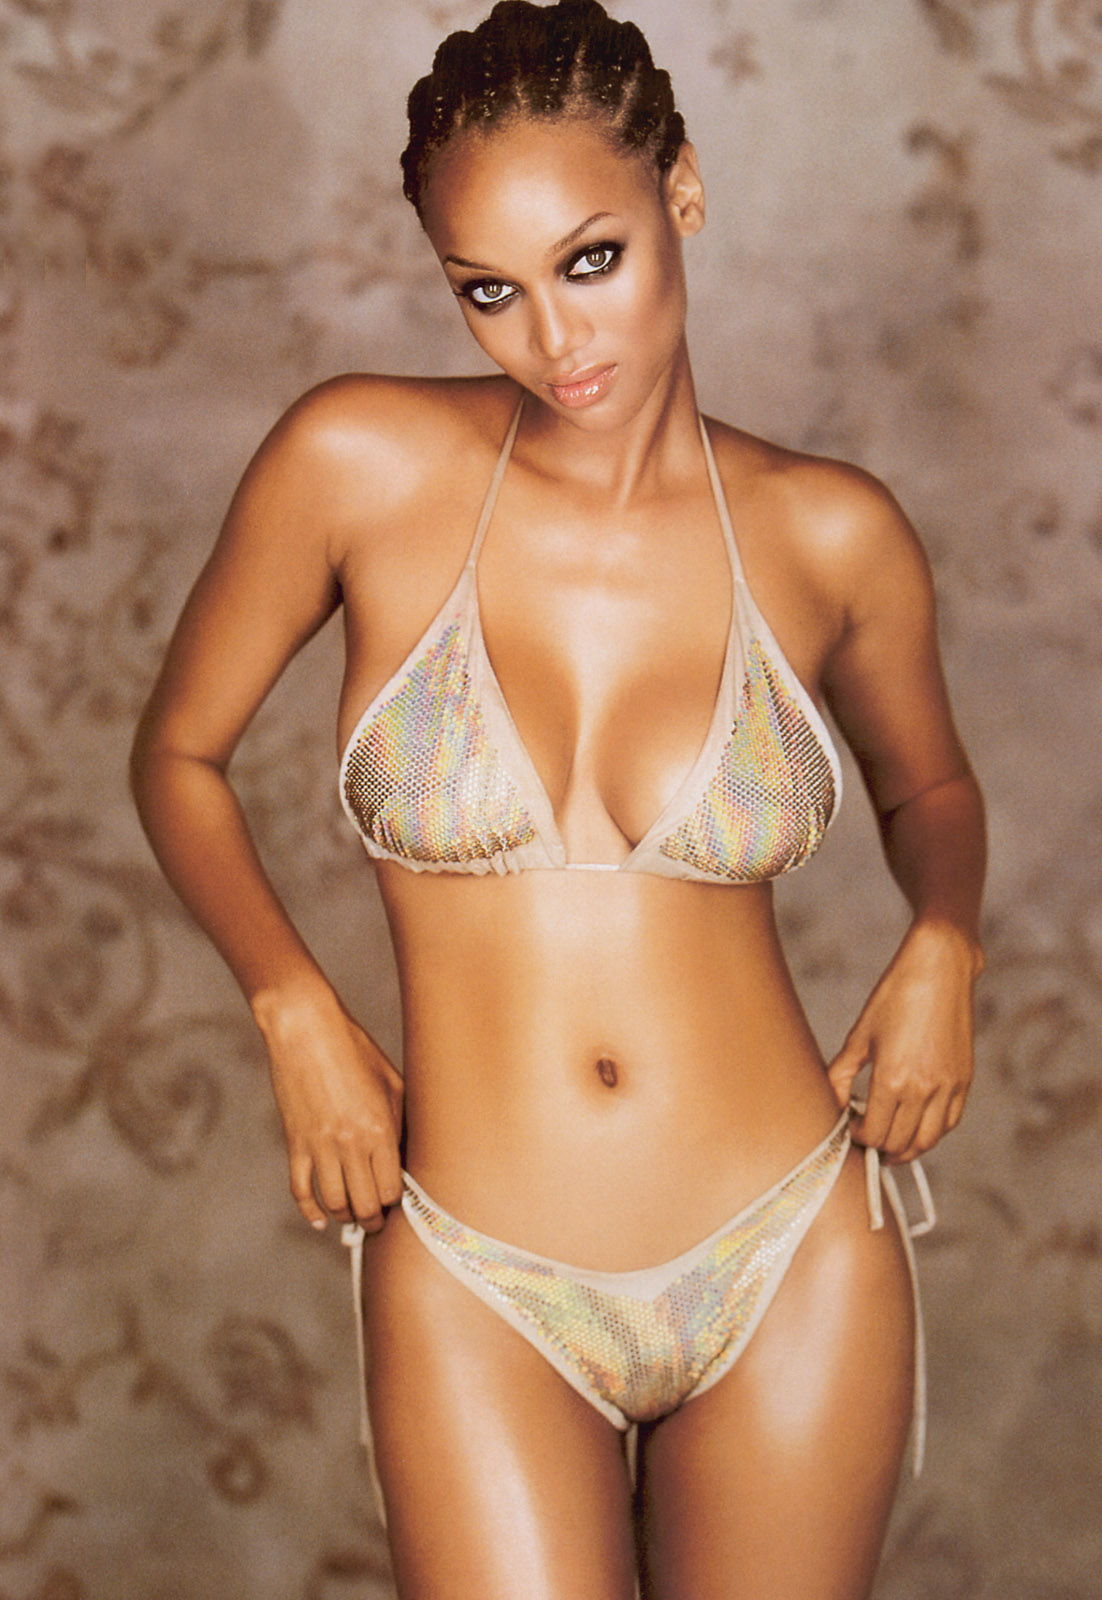 Hot pictures of tyra banks naked, video of girls by sugarbabes